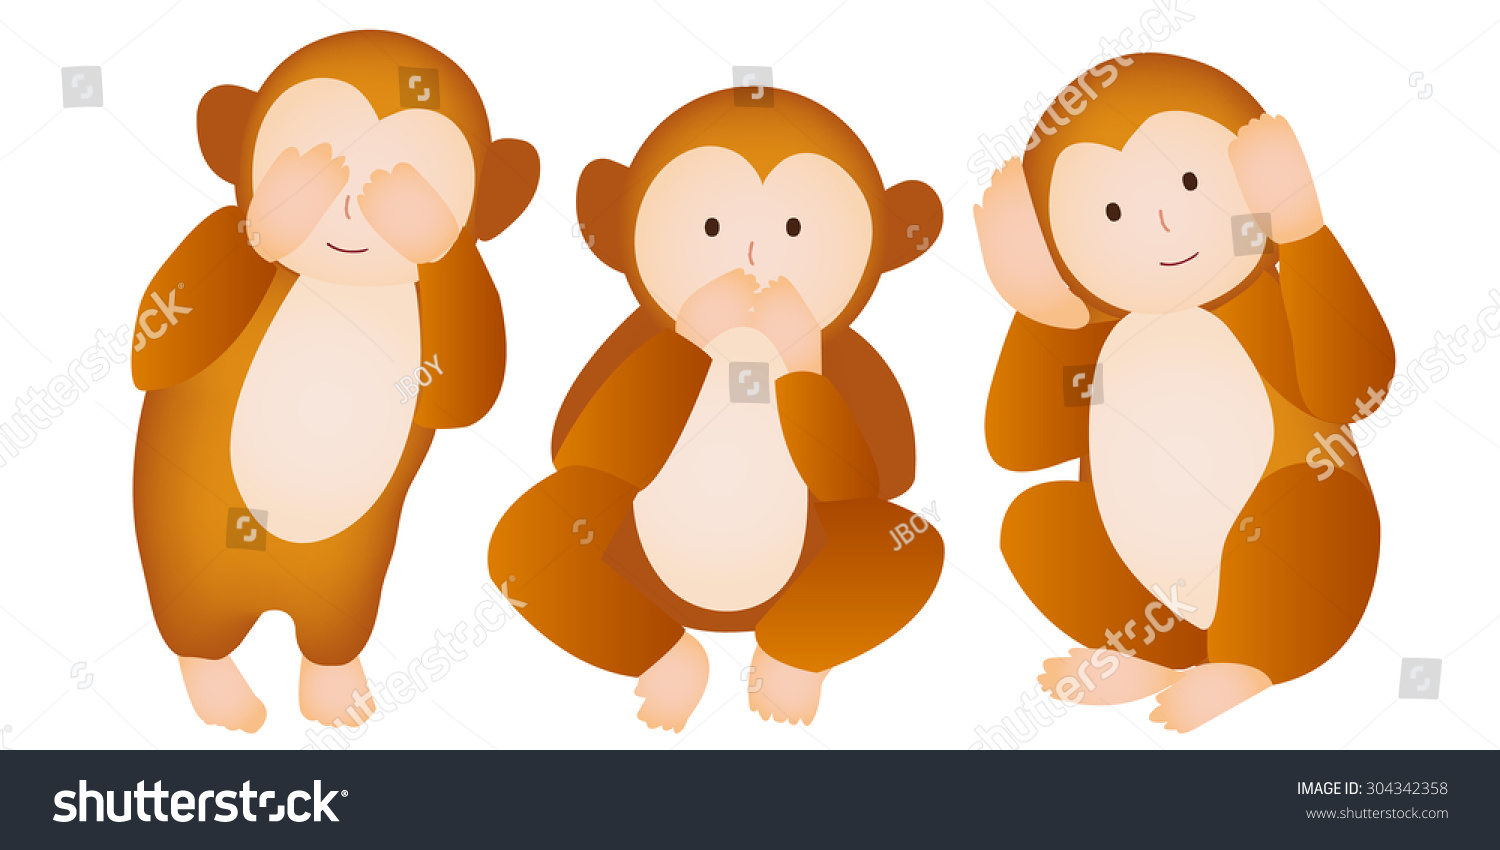 Monkey Three Wise Monkeys Greeting Cards Stock Vector 304342358